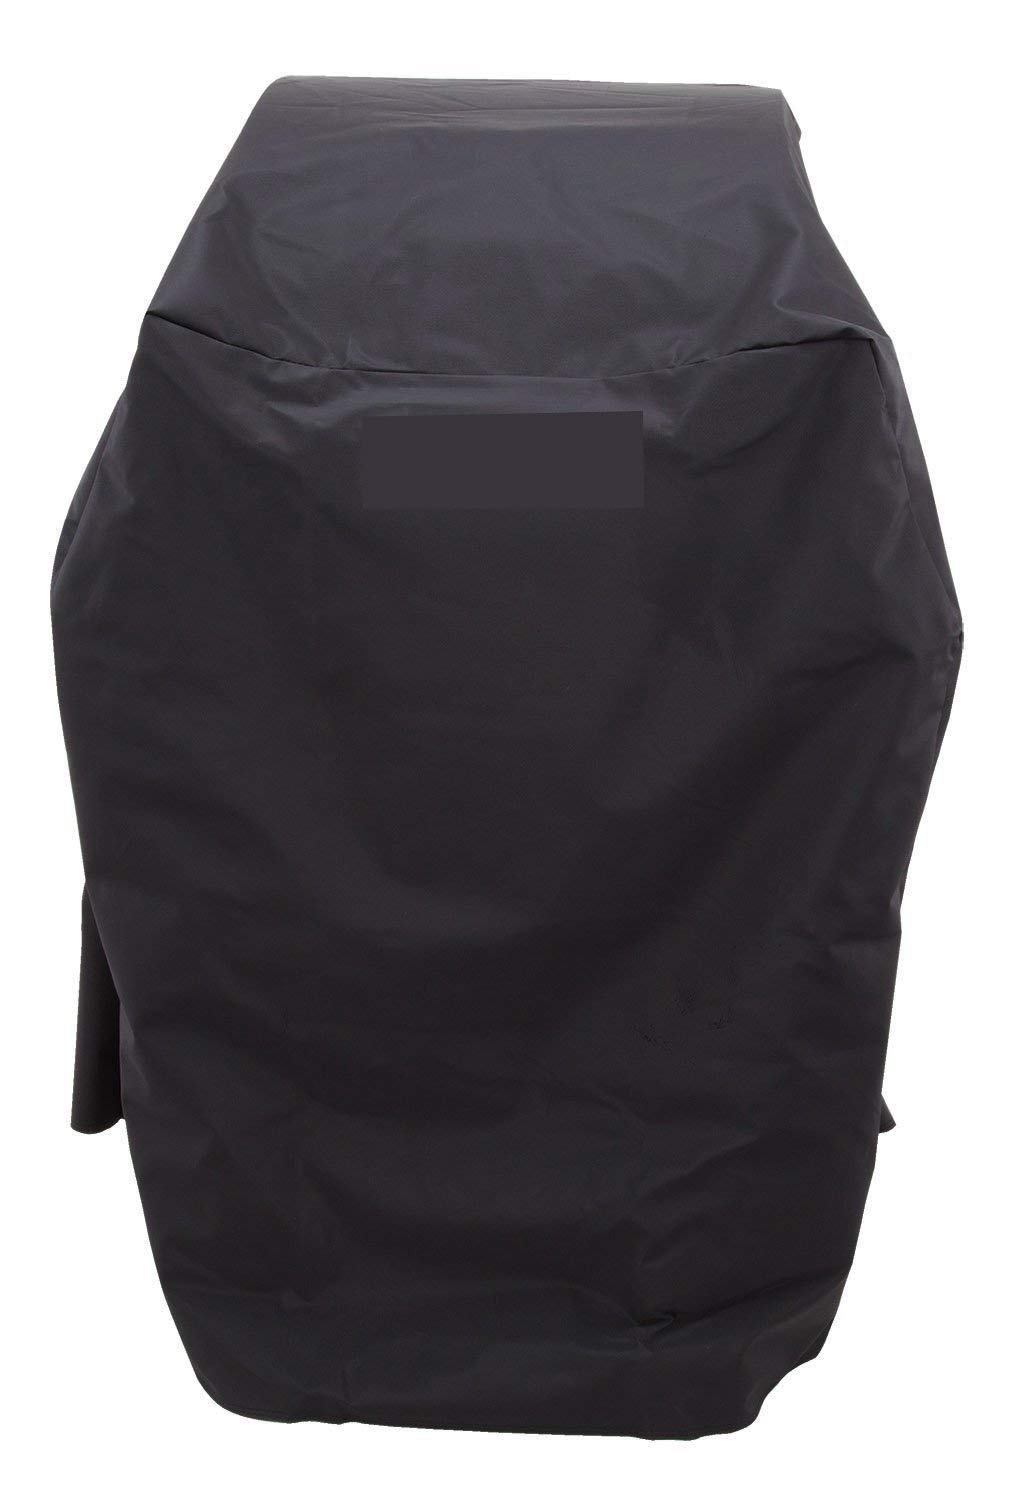 Hongso CB42 All-Season Grill Cover Replacement for Char-Broil 2 Burner Grill Cover, Black (32'' W x 26'' D x 42'')